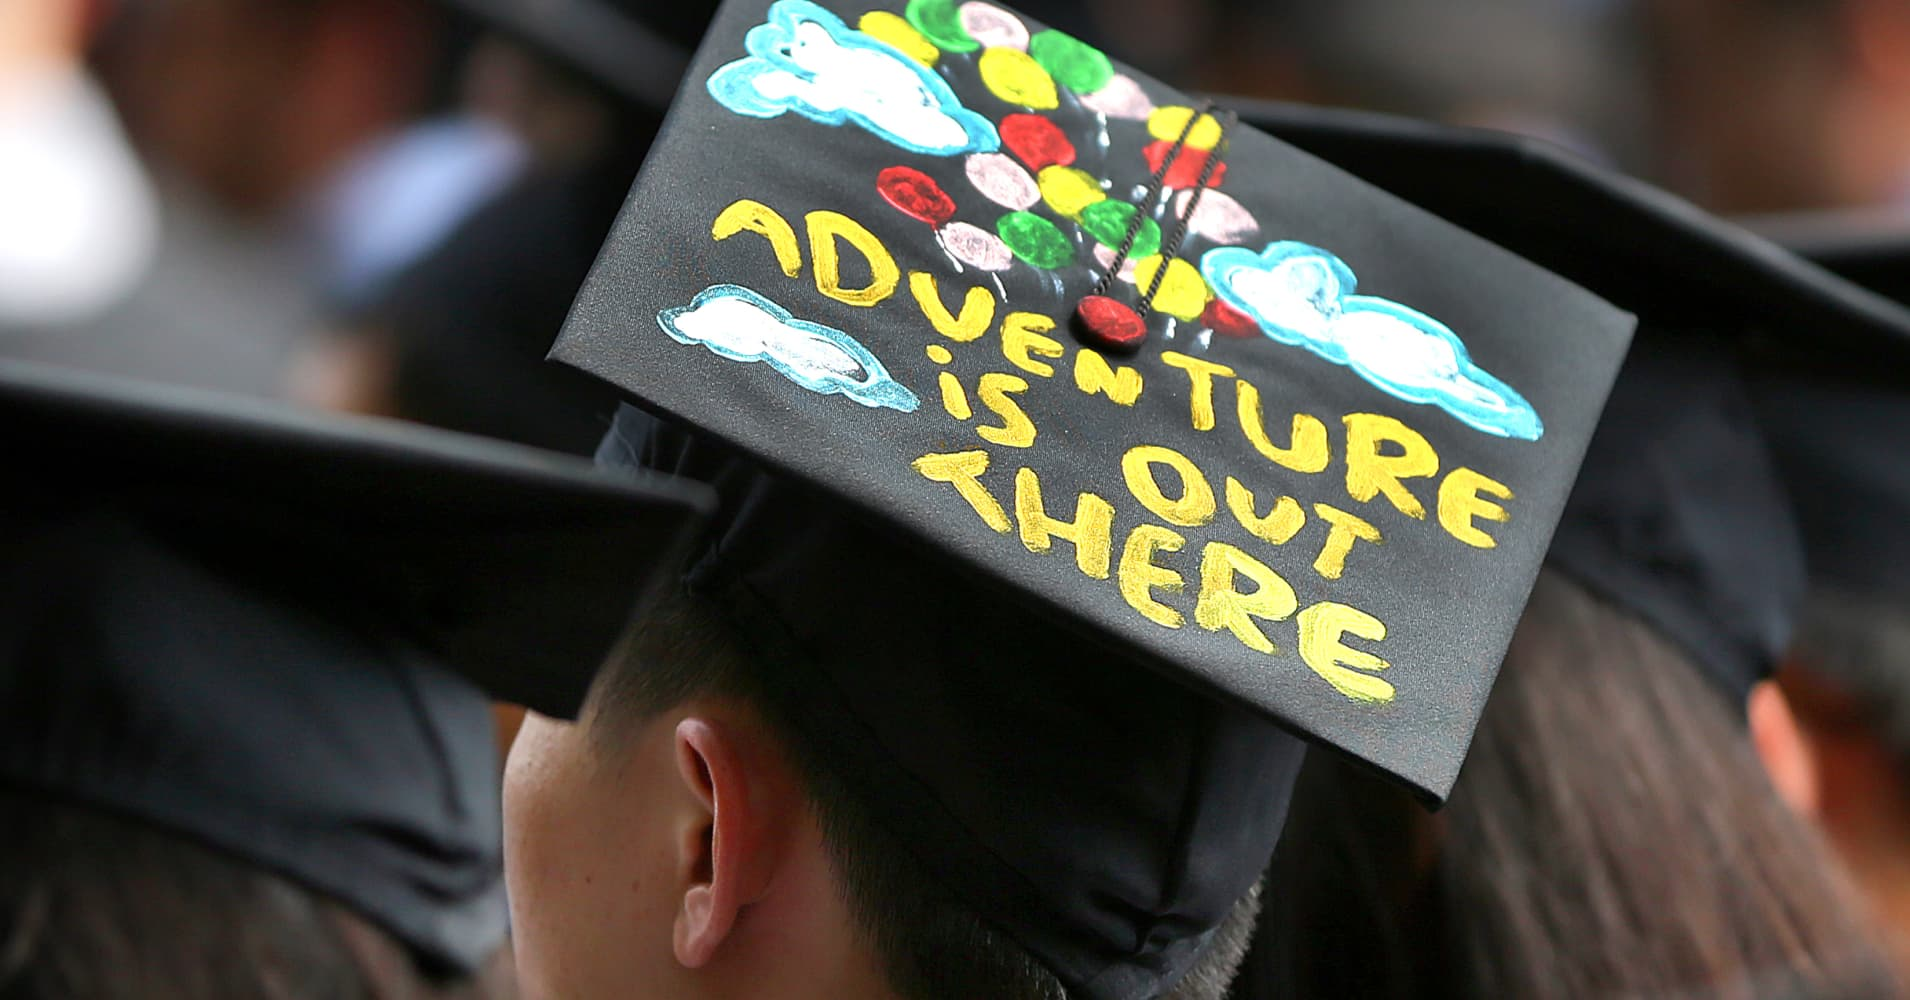 MIT held its graduation on it's campus. A graduate has an inspirational saying on his cap.